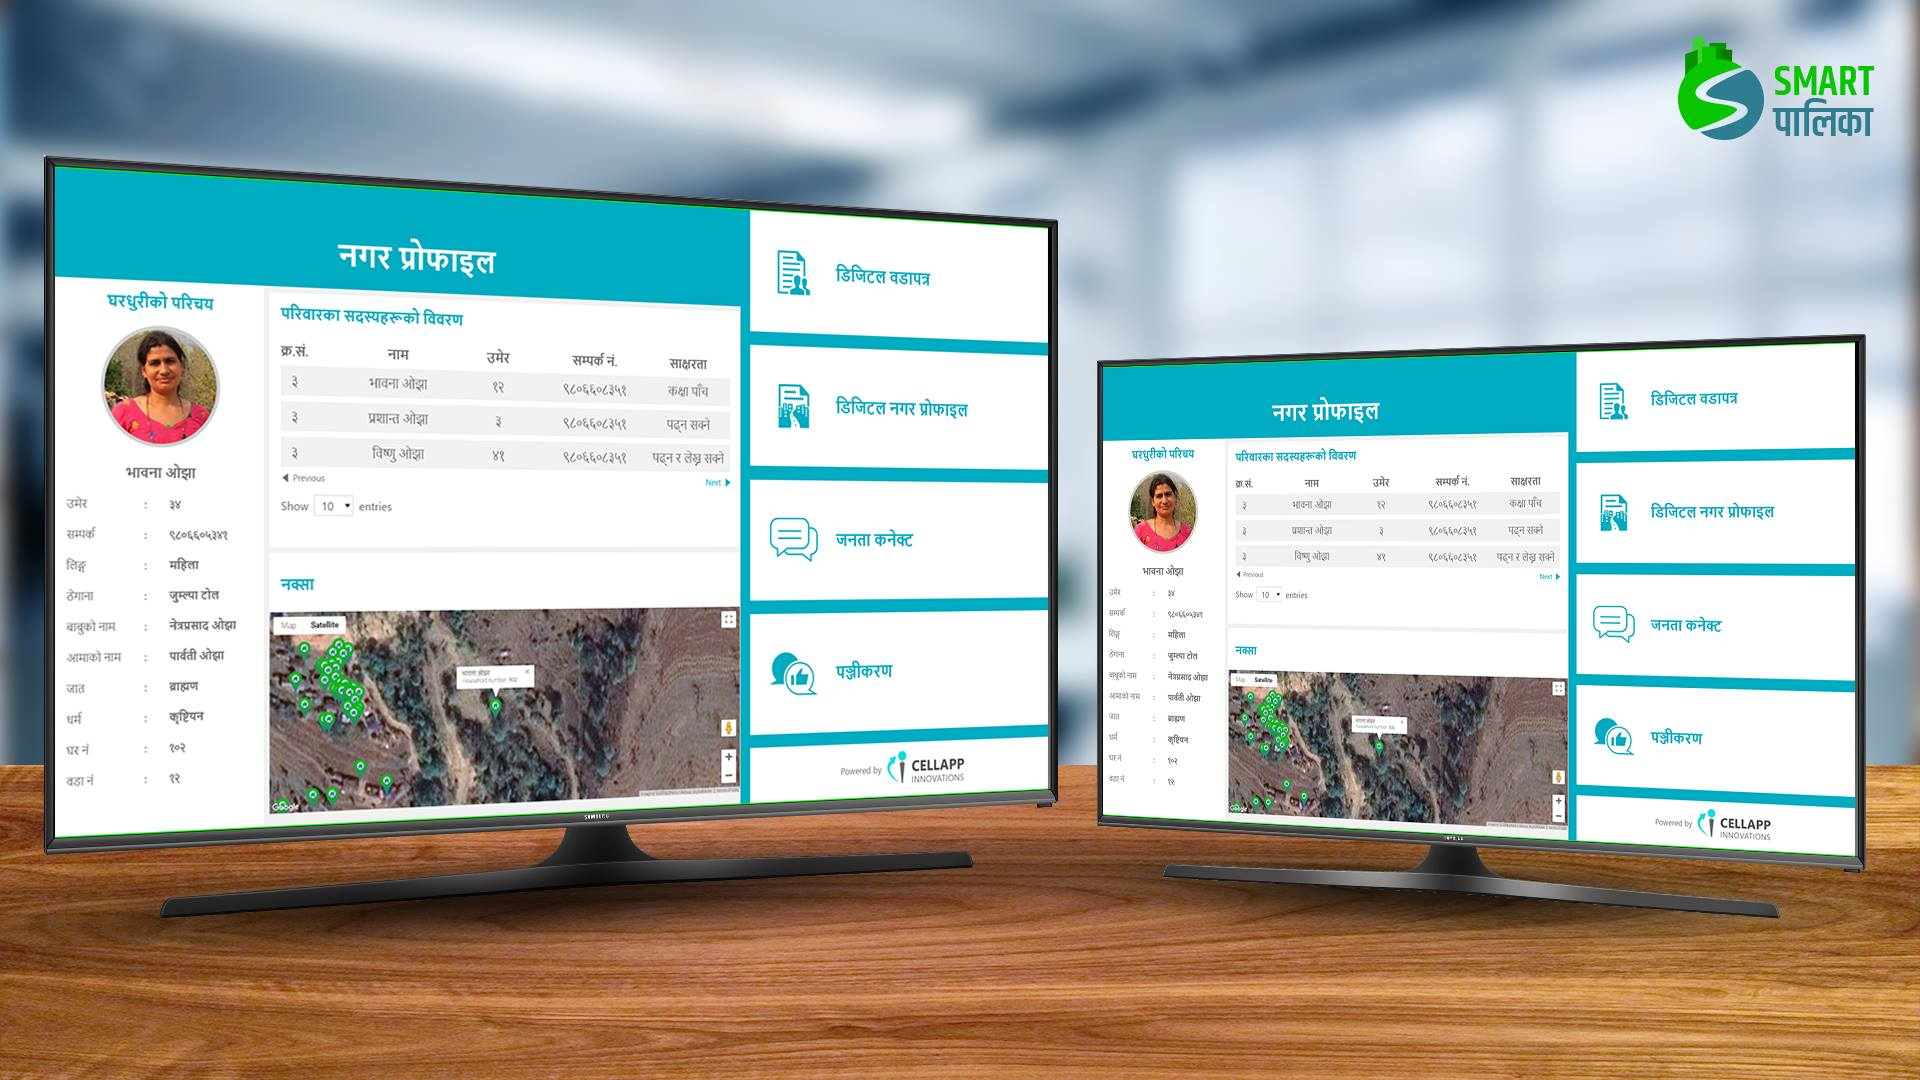 smartpalika desktop interface